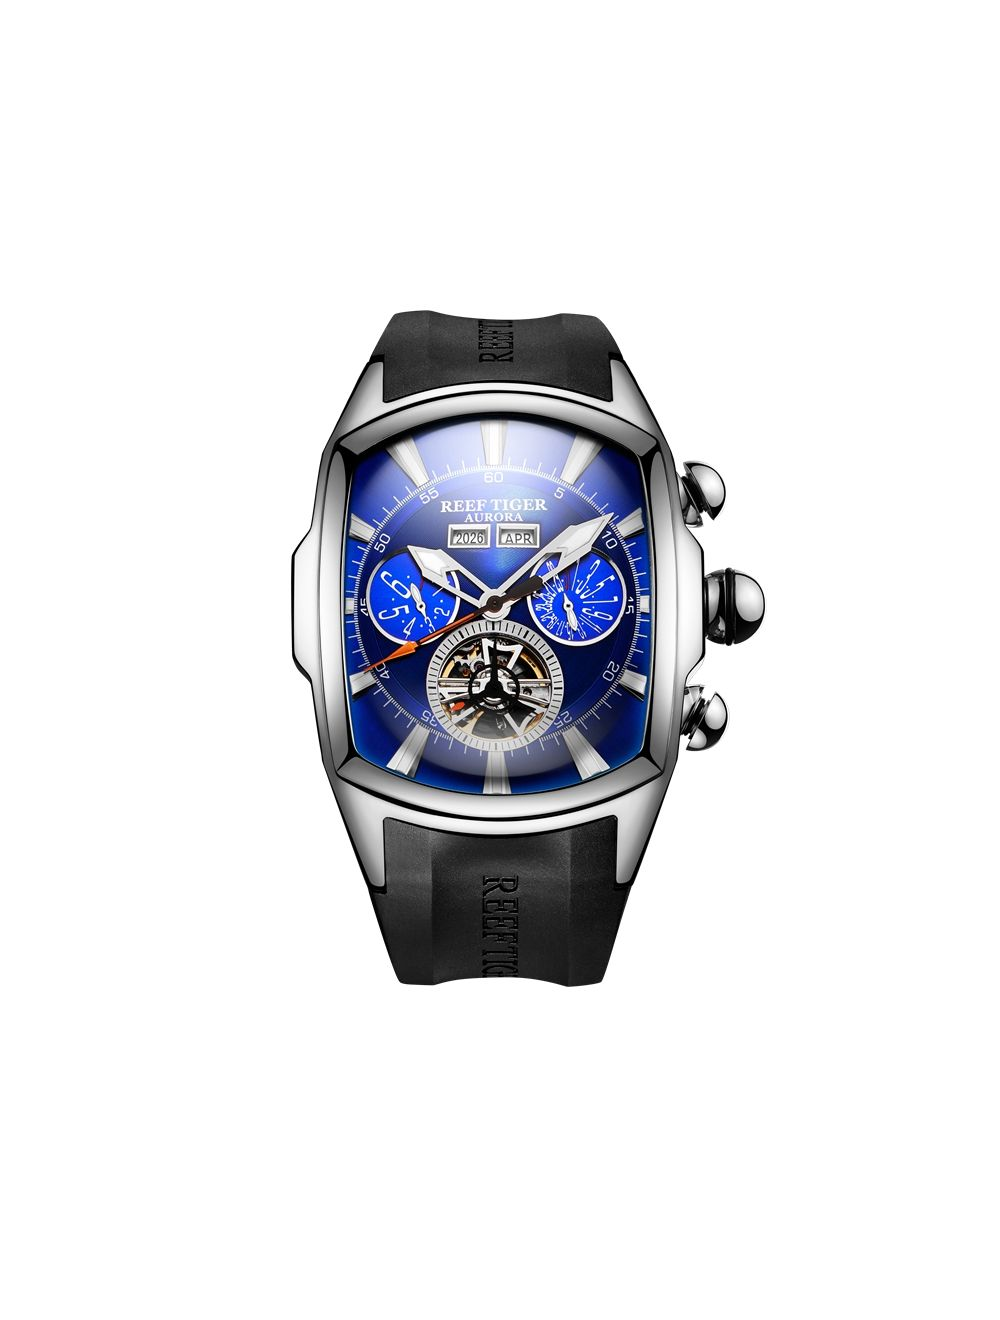 Orologi Tourbillon